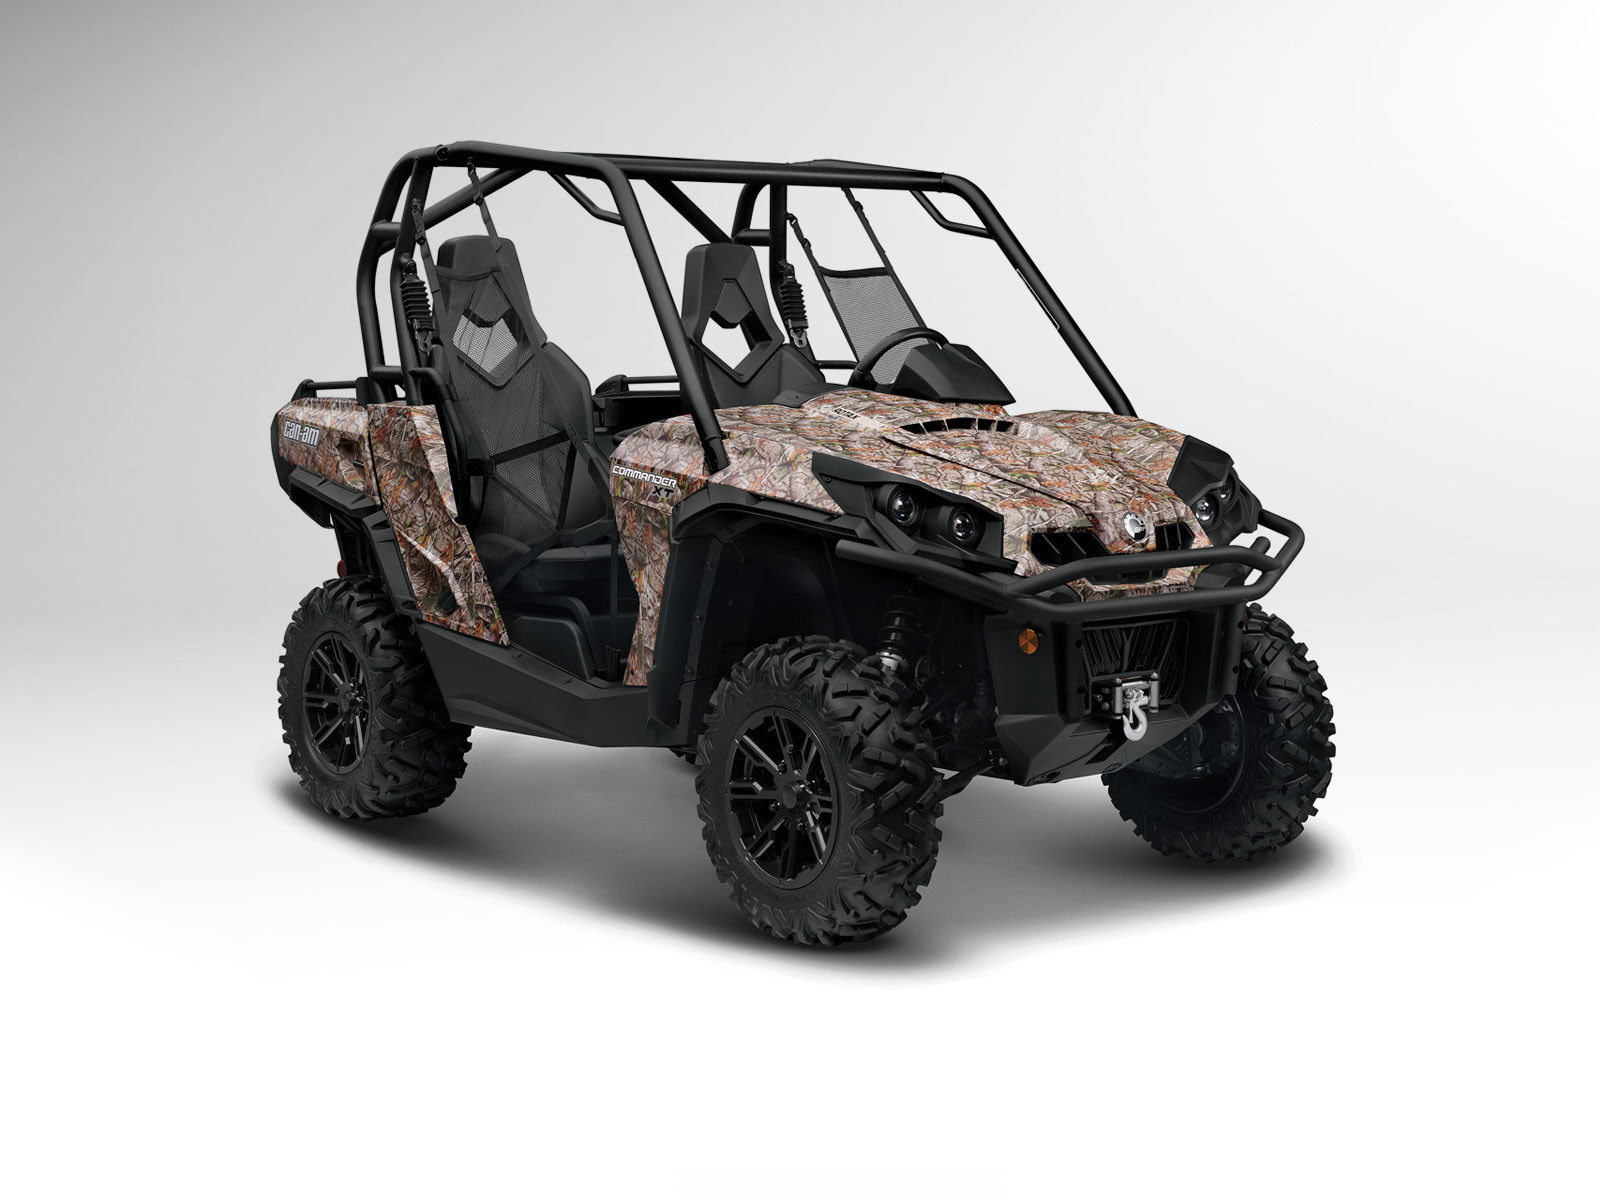 2012 Can-Am Commander 800R XT ATV pictures 4